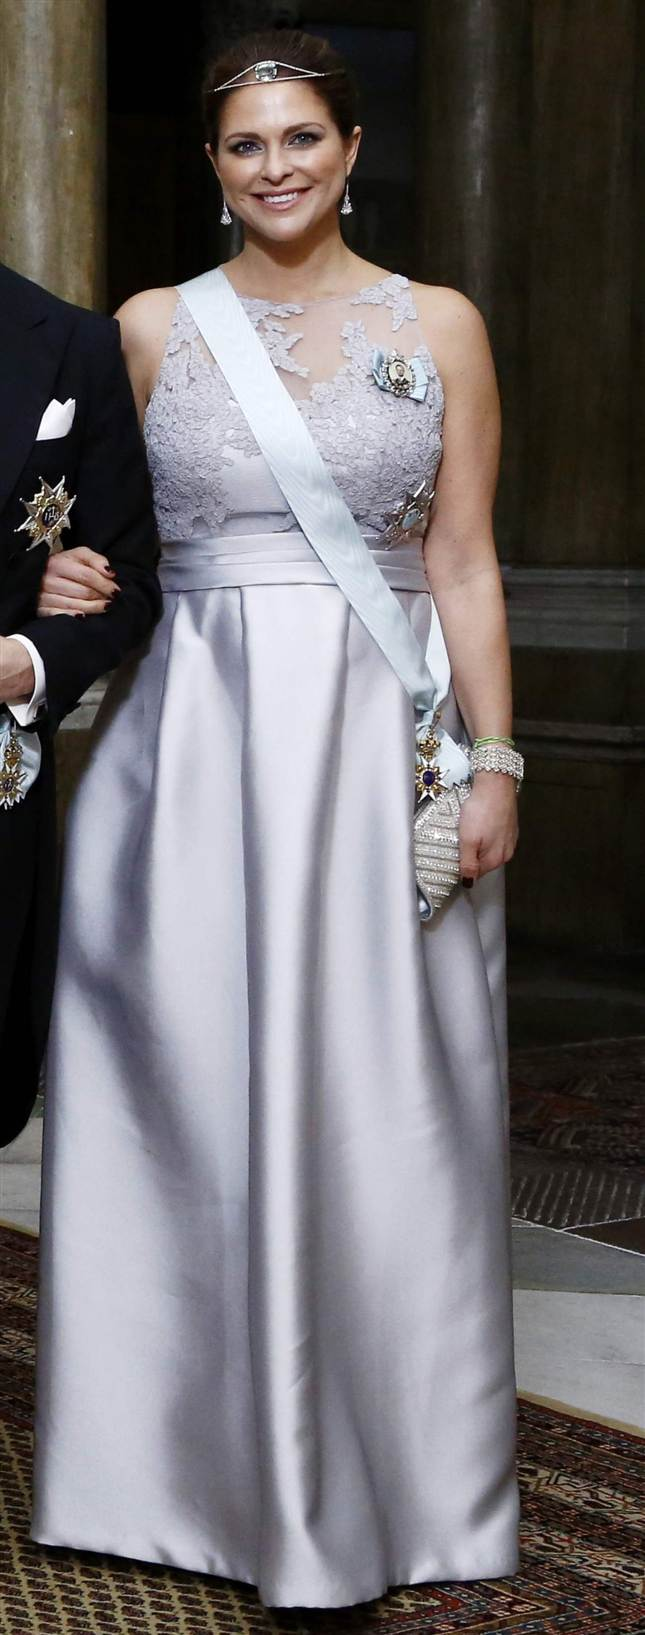 Swedish Royals In Tiaras Queen Silvia Crown Princess